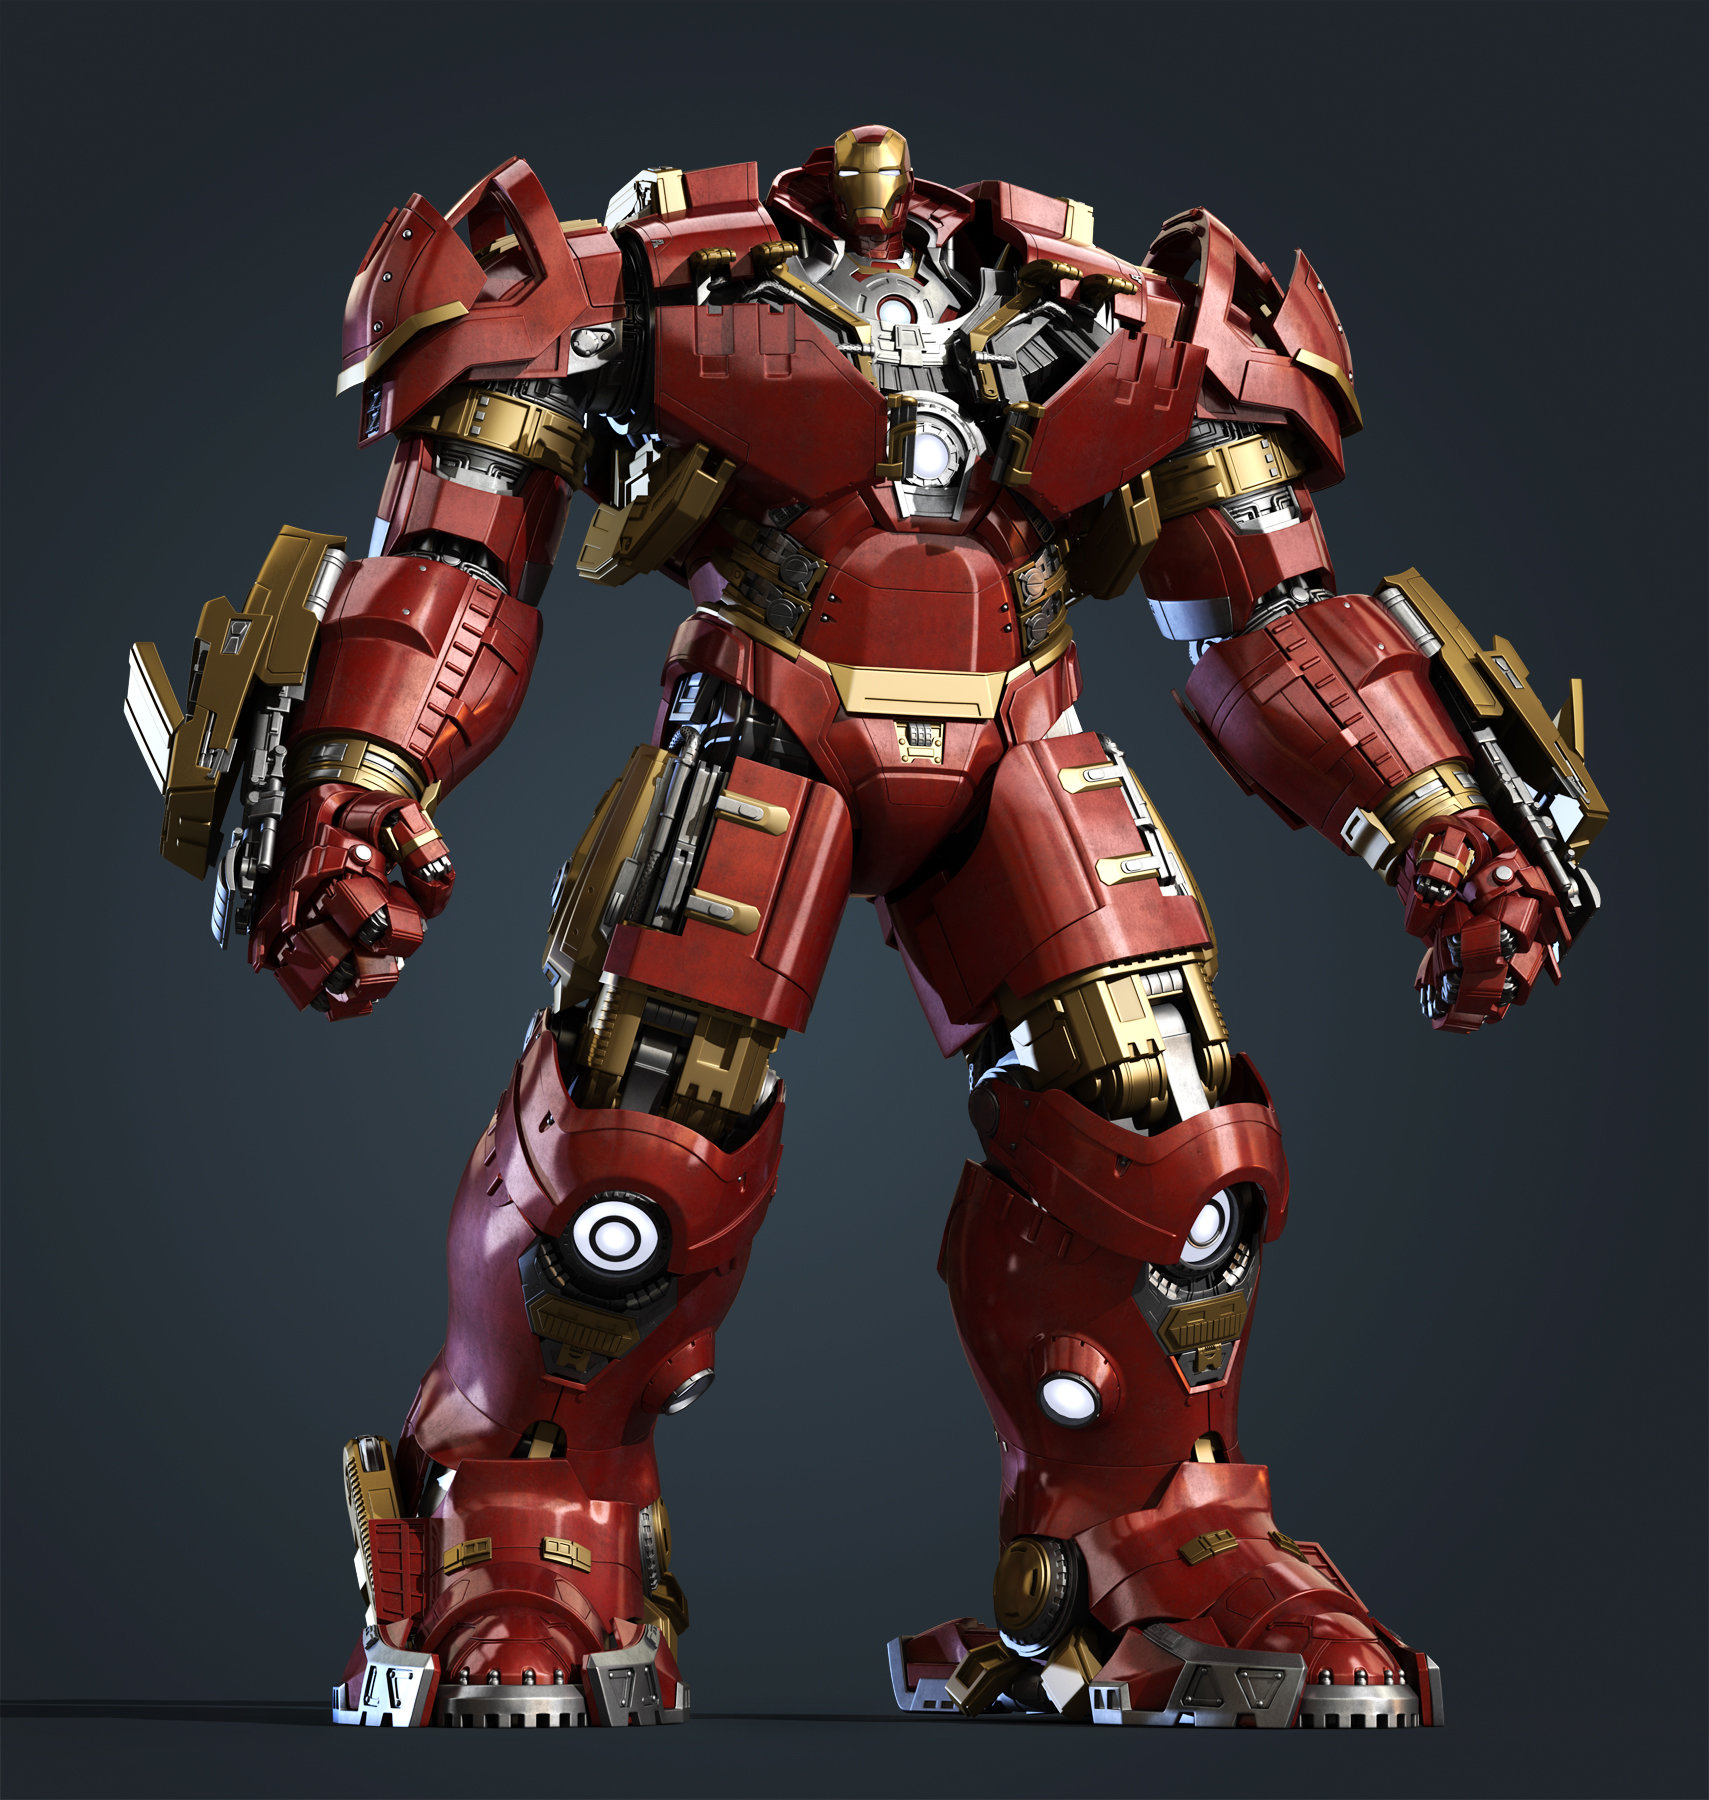 1000+ images about hulkbuster on Pinterest | Models, Armors and Civil ...